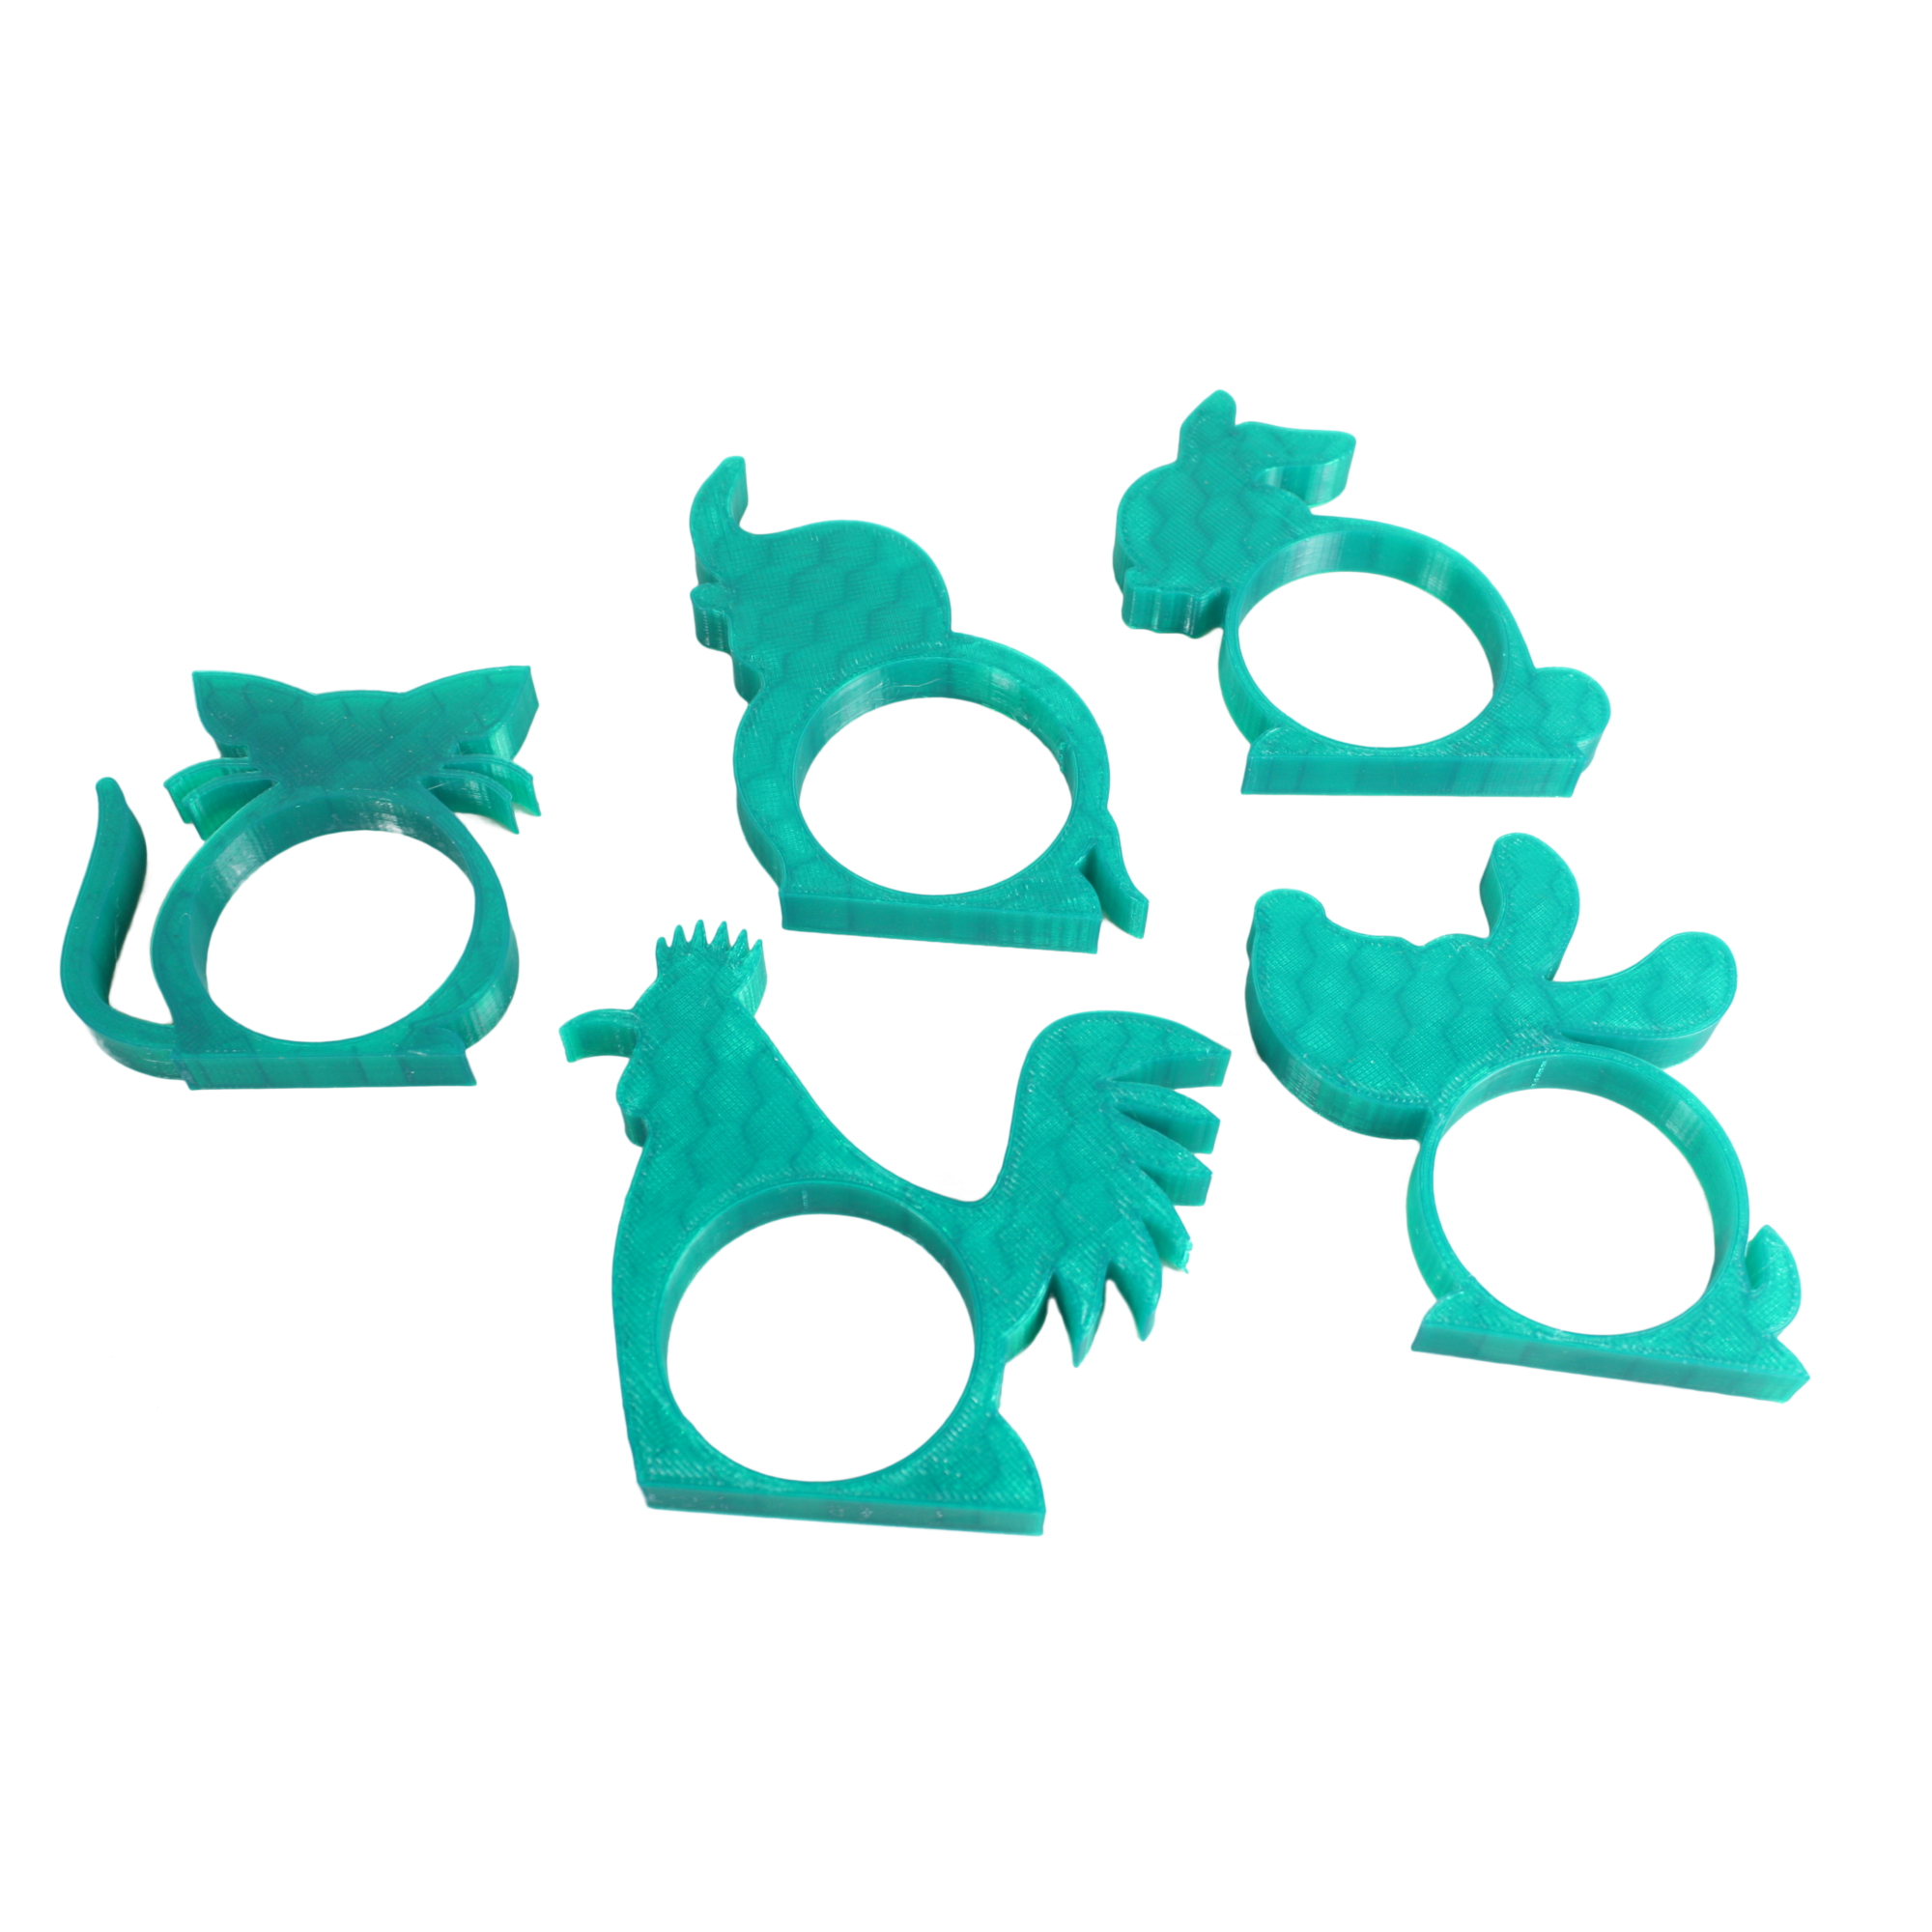 5x Childrens Animal Shaped Napkin Rings Holders - Dark Green